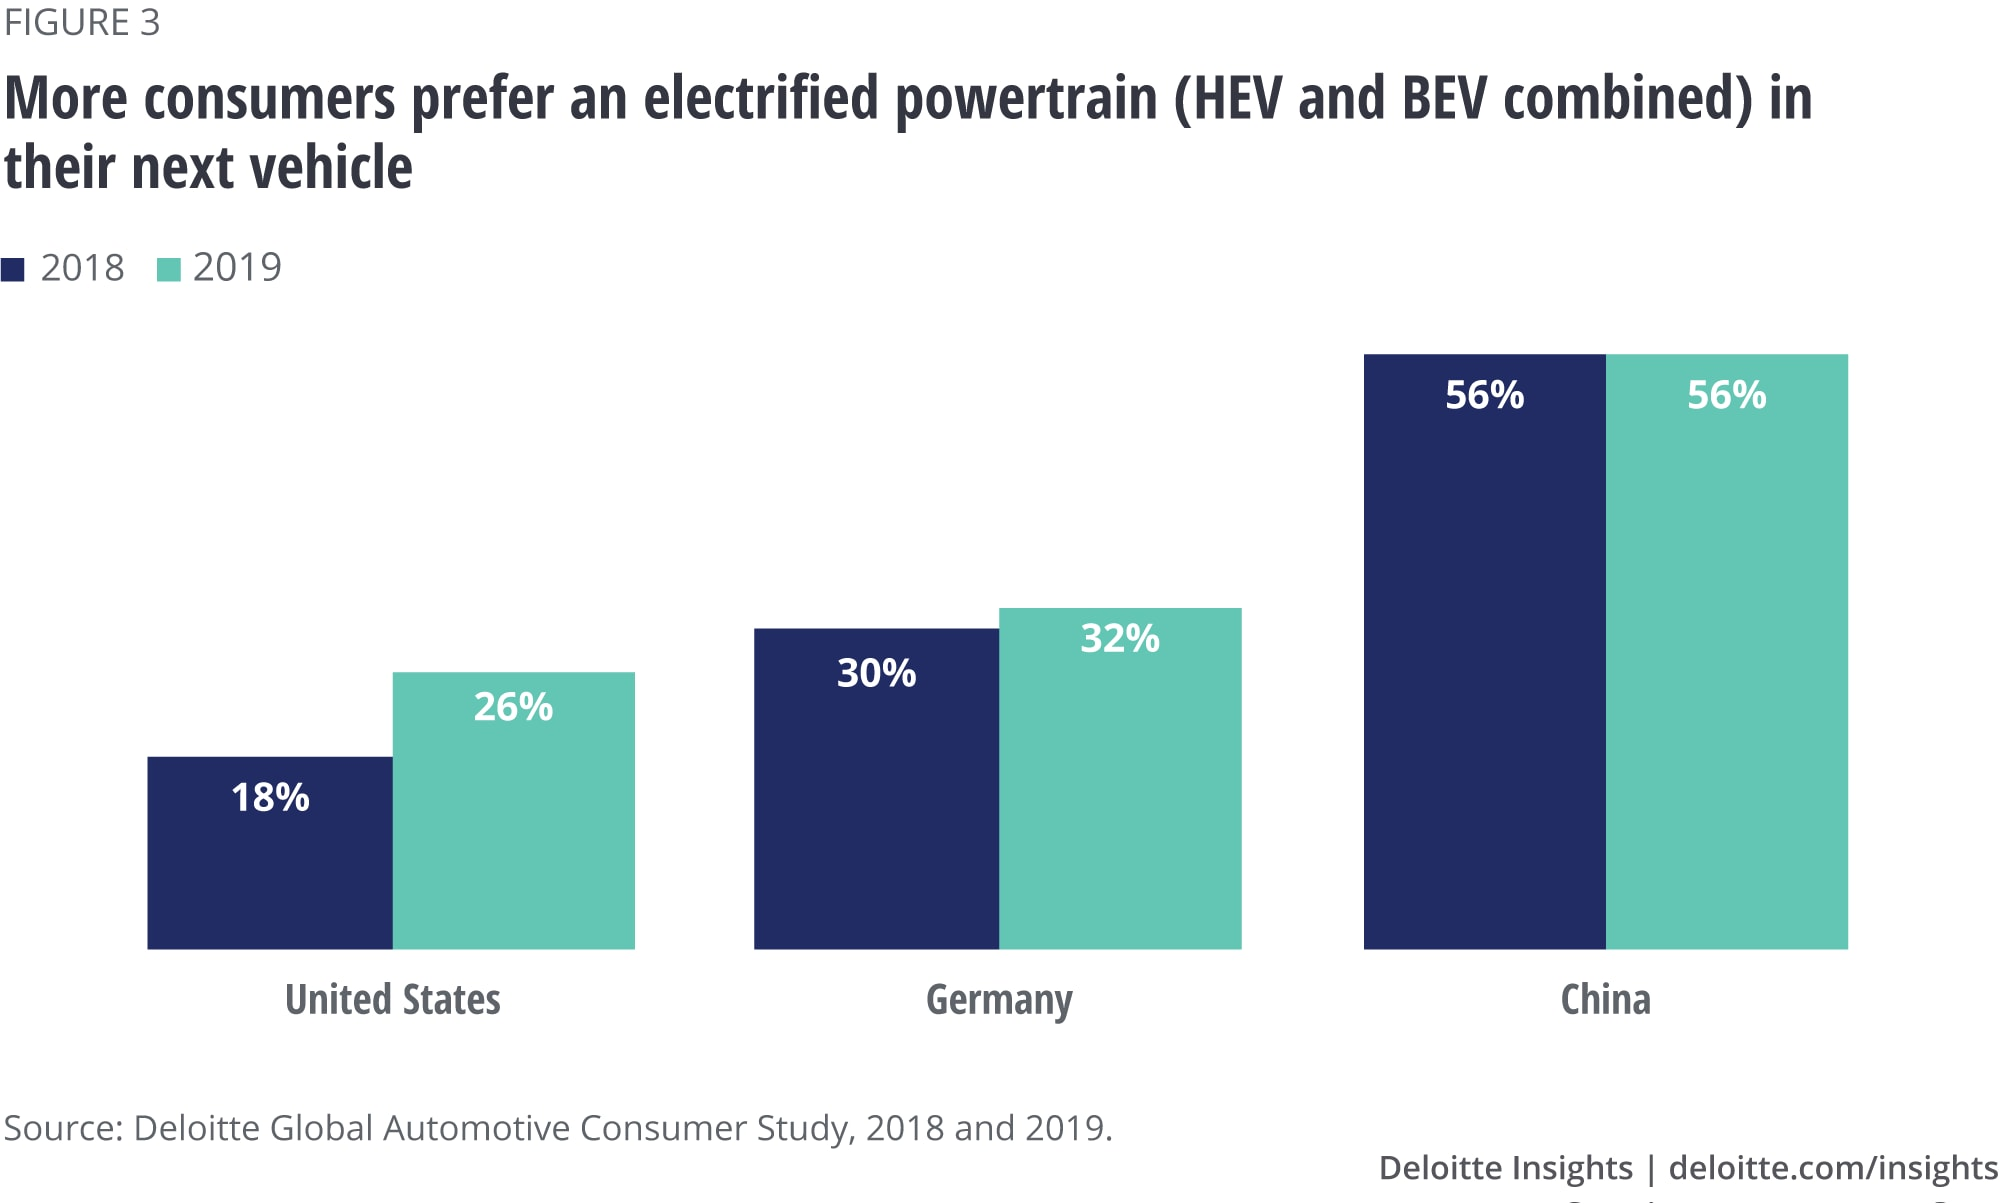 More consumers prefer an electrified powertrain (HEV and BEV combined) in their next vehicle